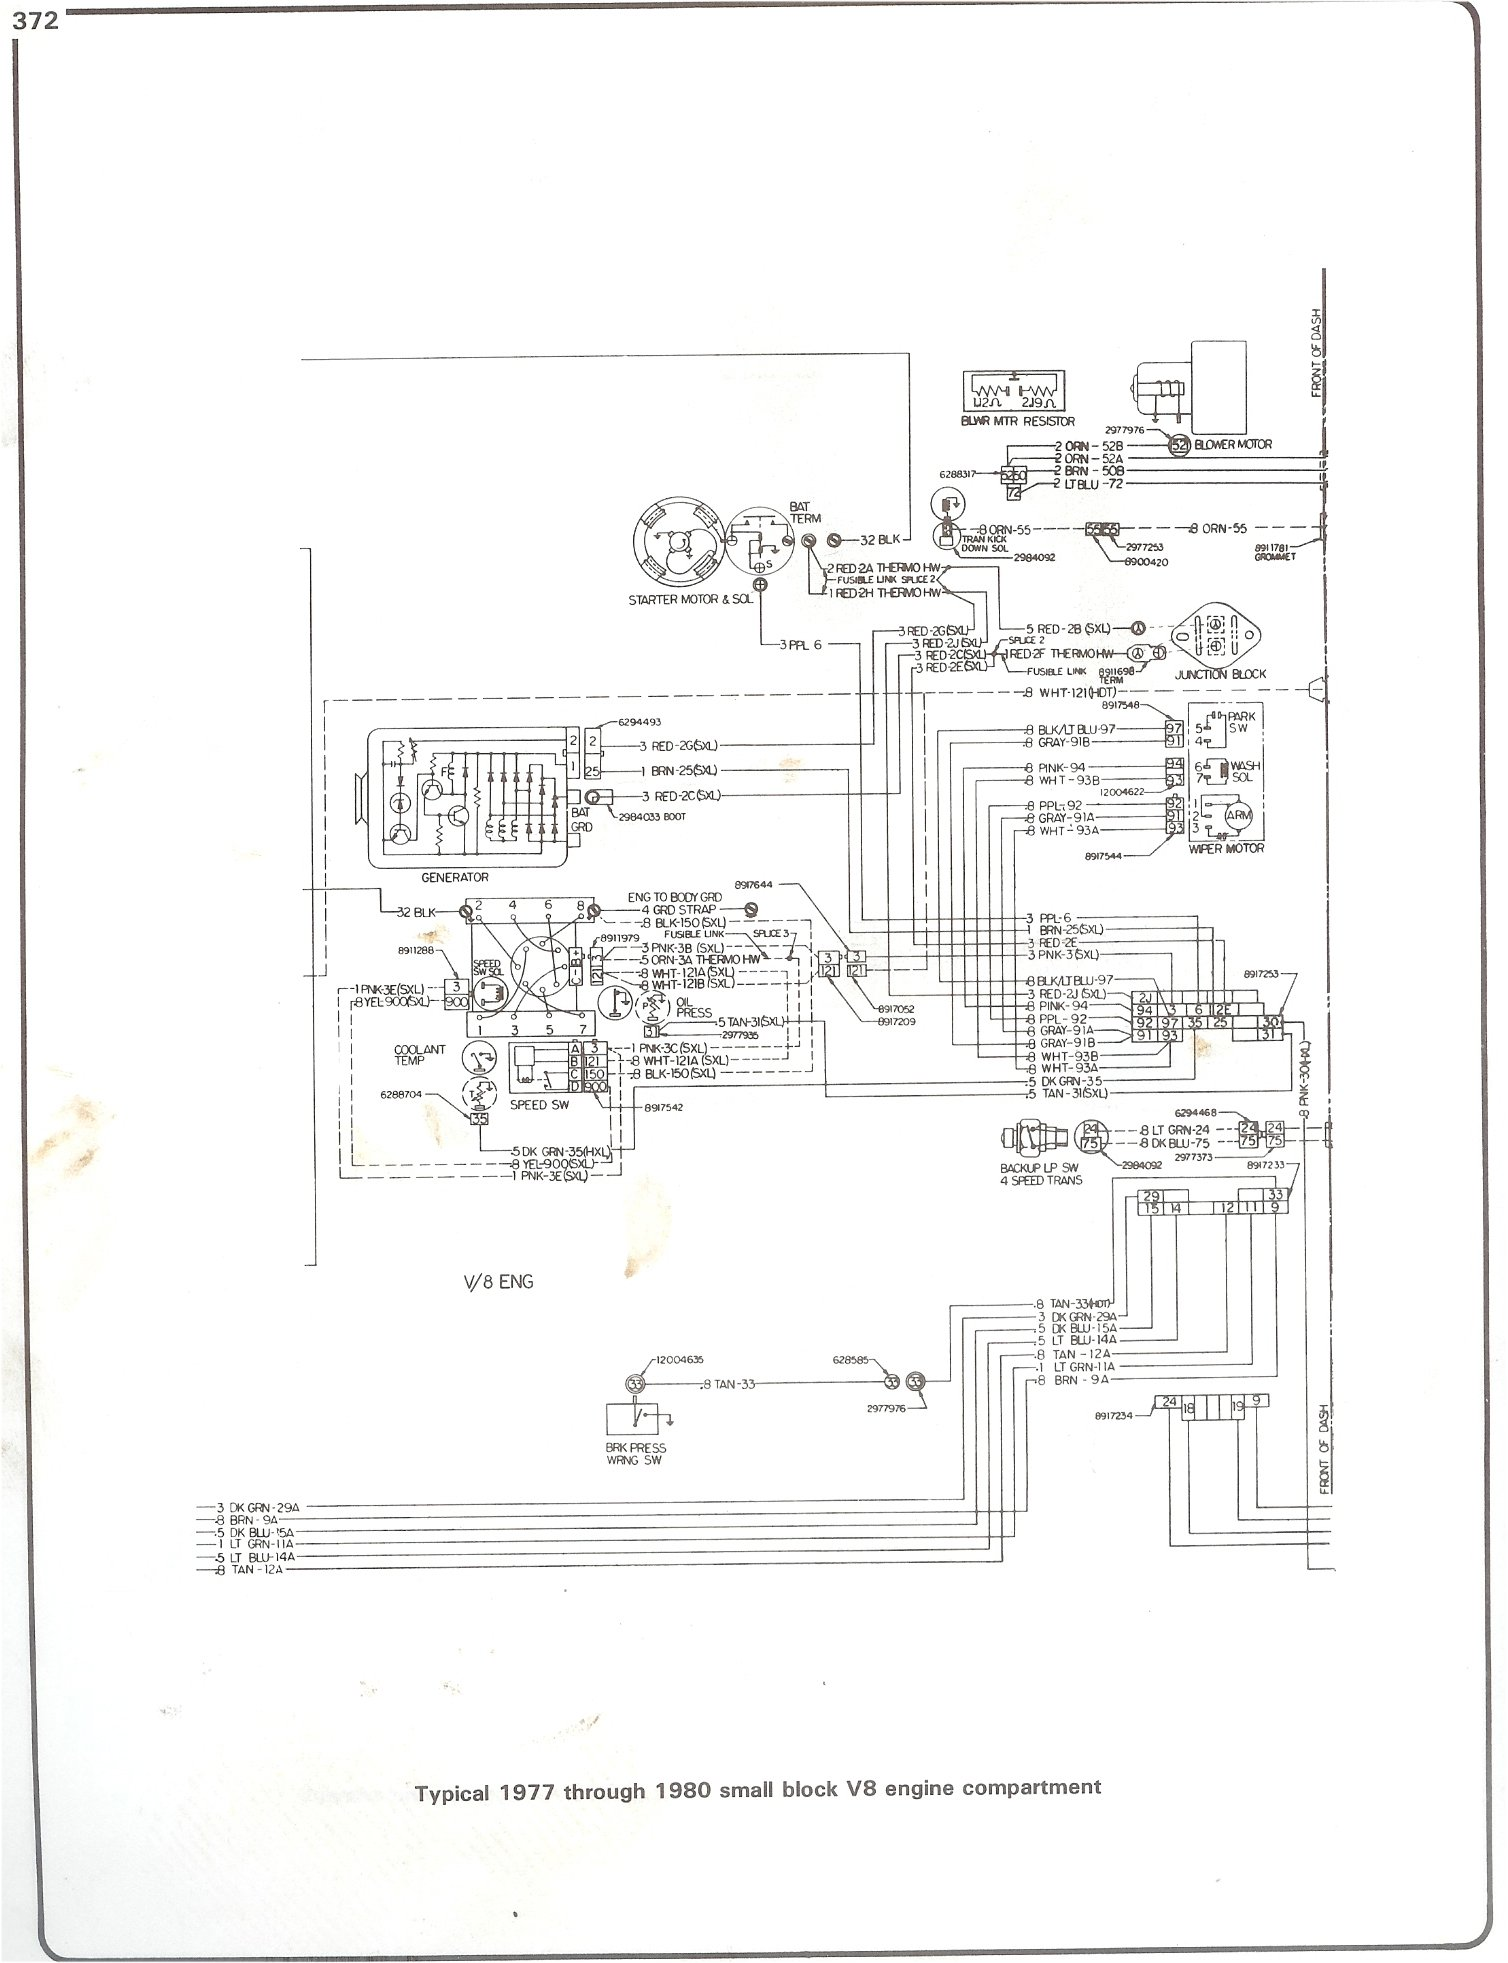 DIAGRAM] Alternator Wiring Diagram For 1978 Chevy Blazer FULL Version HD  Quality Chevy Blazer - EBOOKAFRICA.BORGOCONTESSA.ITebookafrica.borgocontessa.it